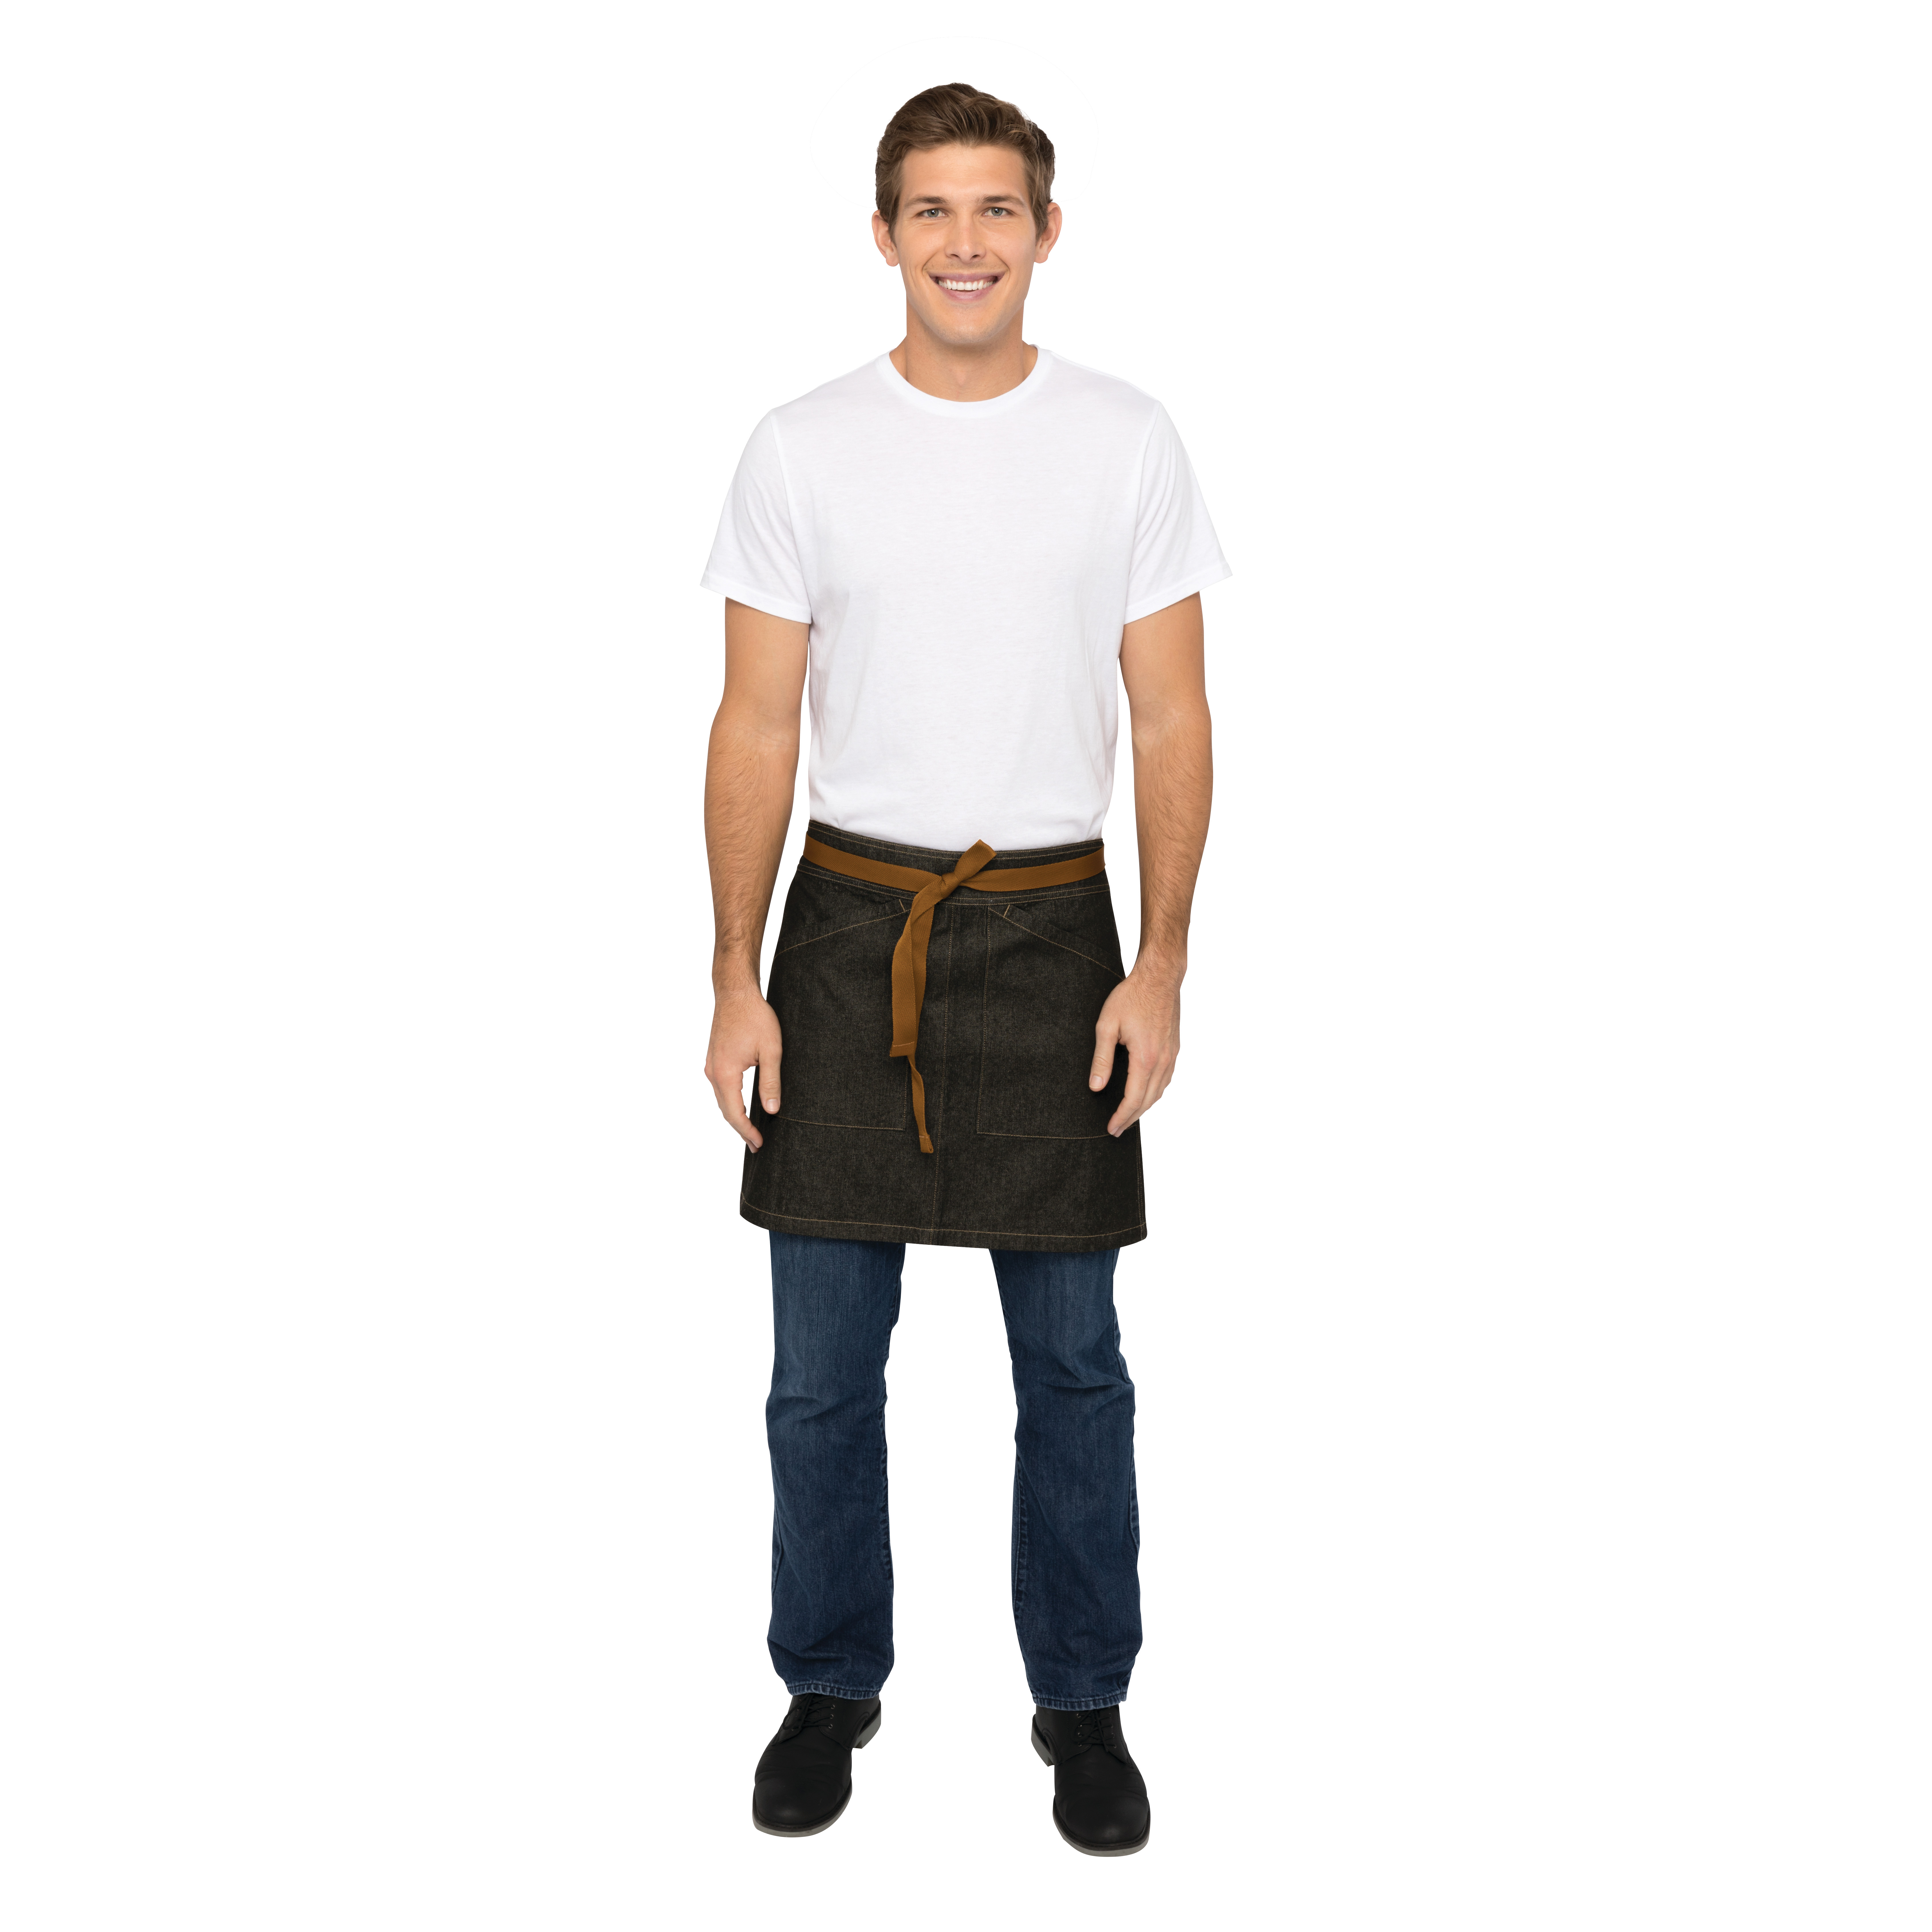 Chef Works AHS01BLK0 waist apron